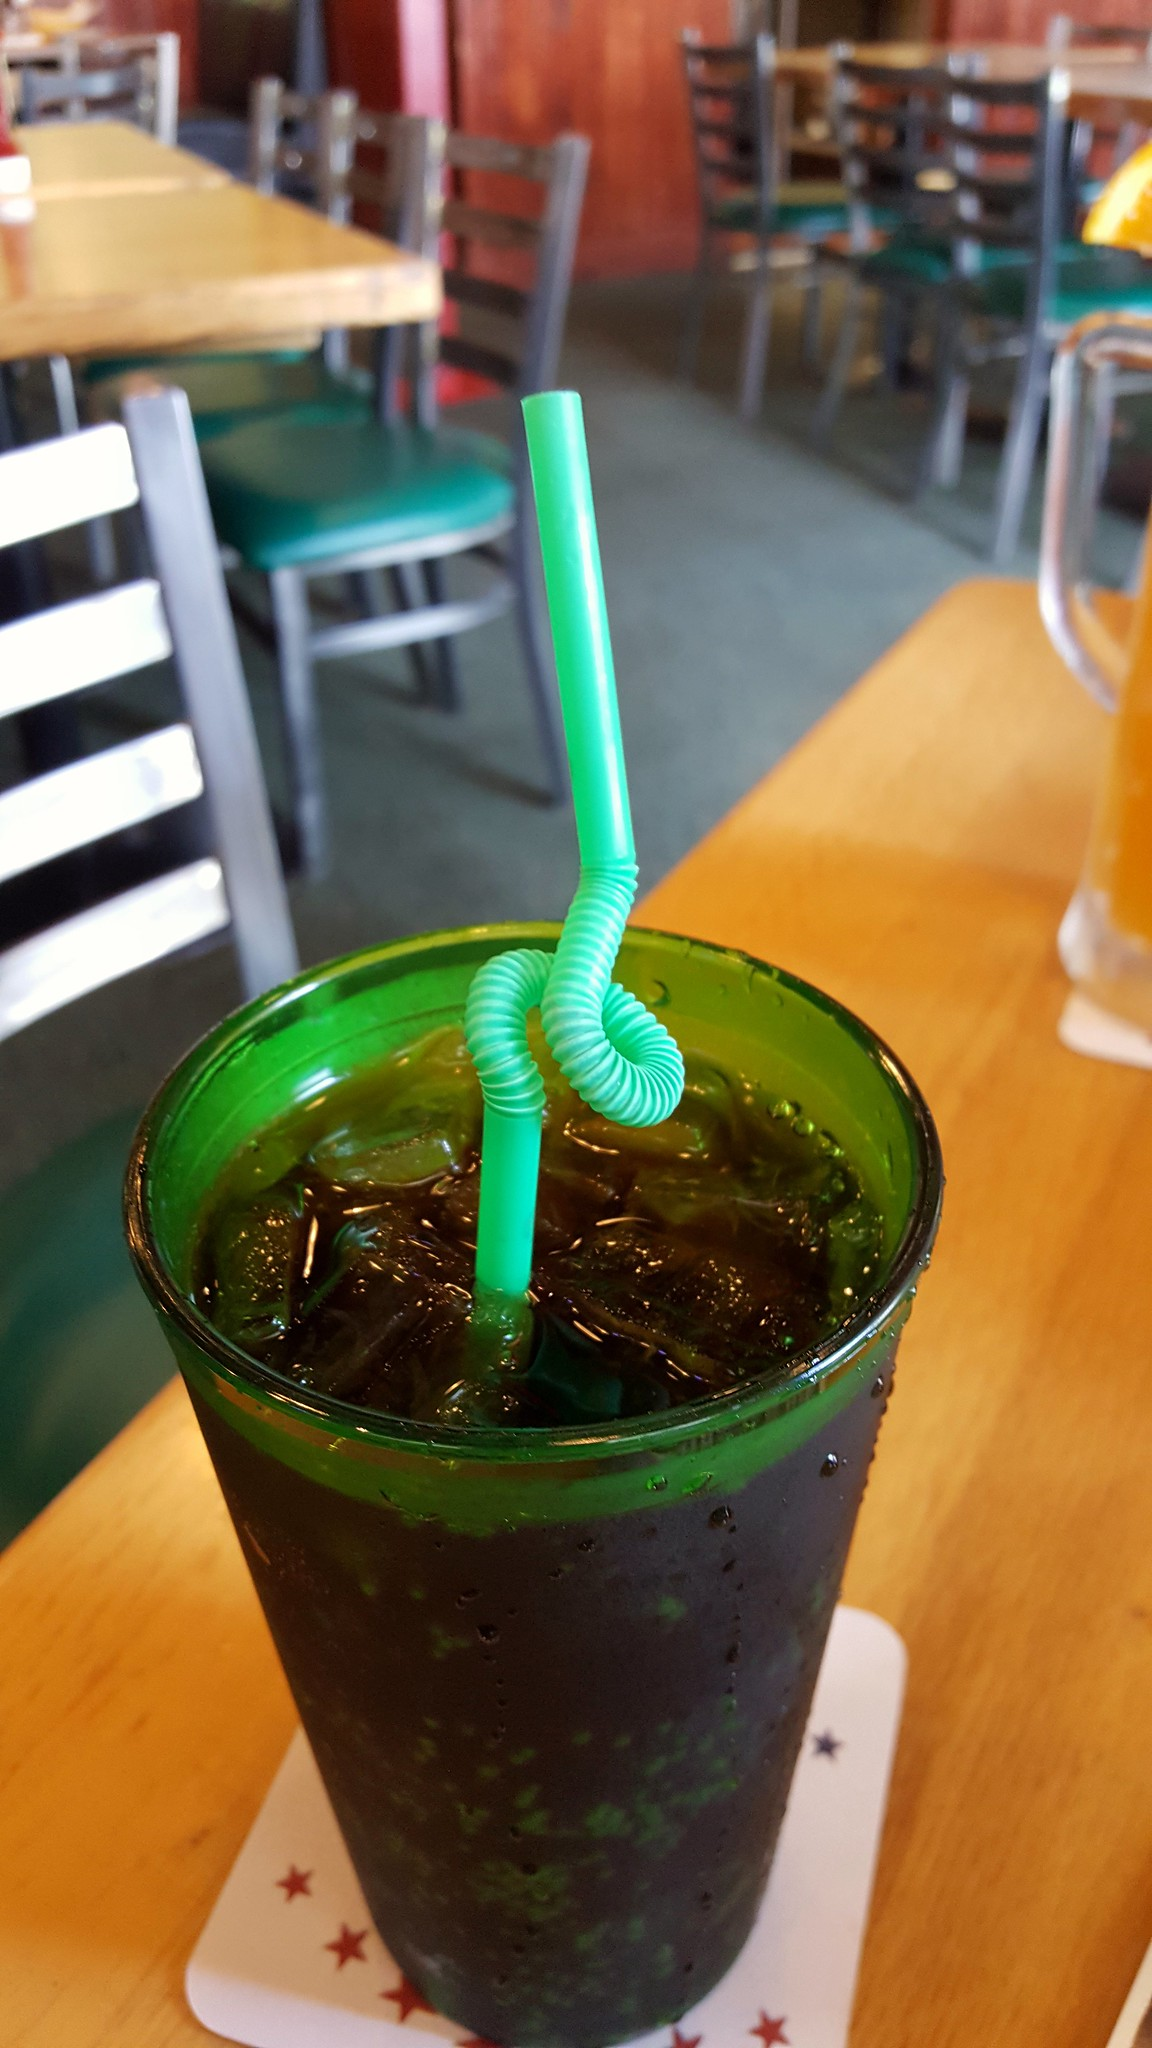 Curly straw